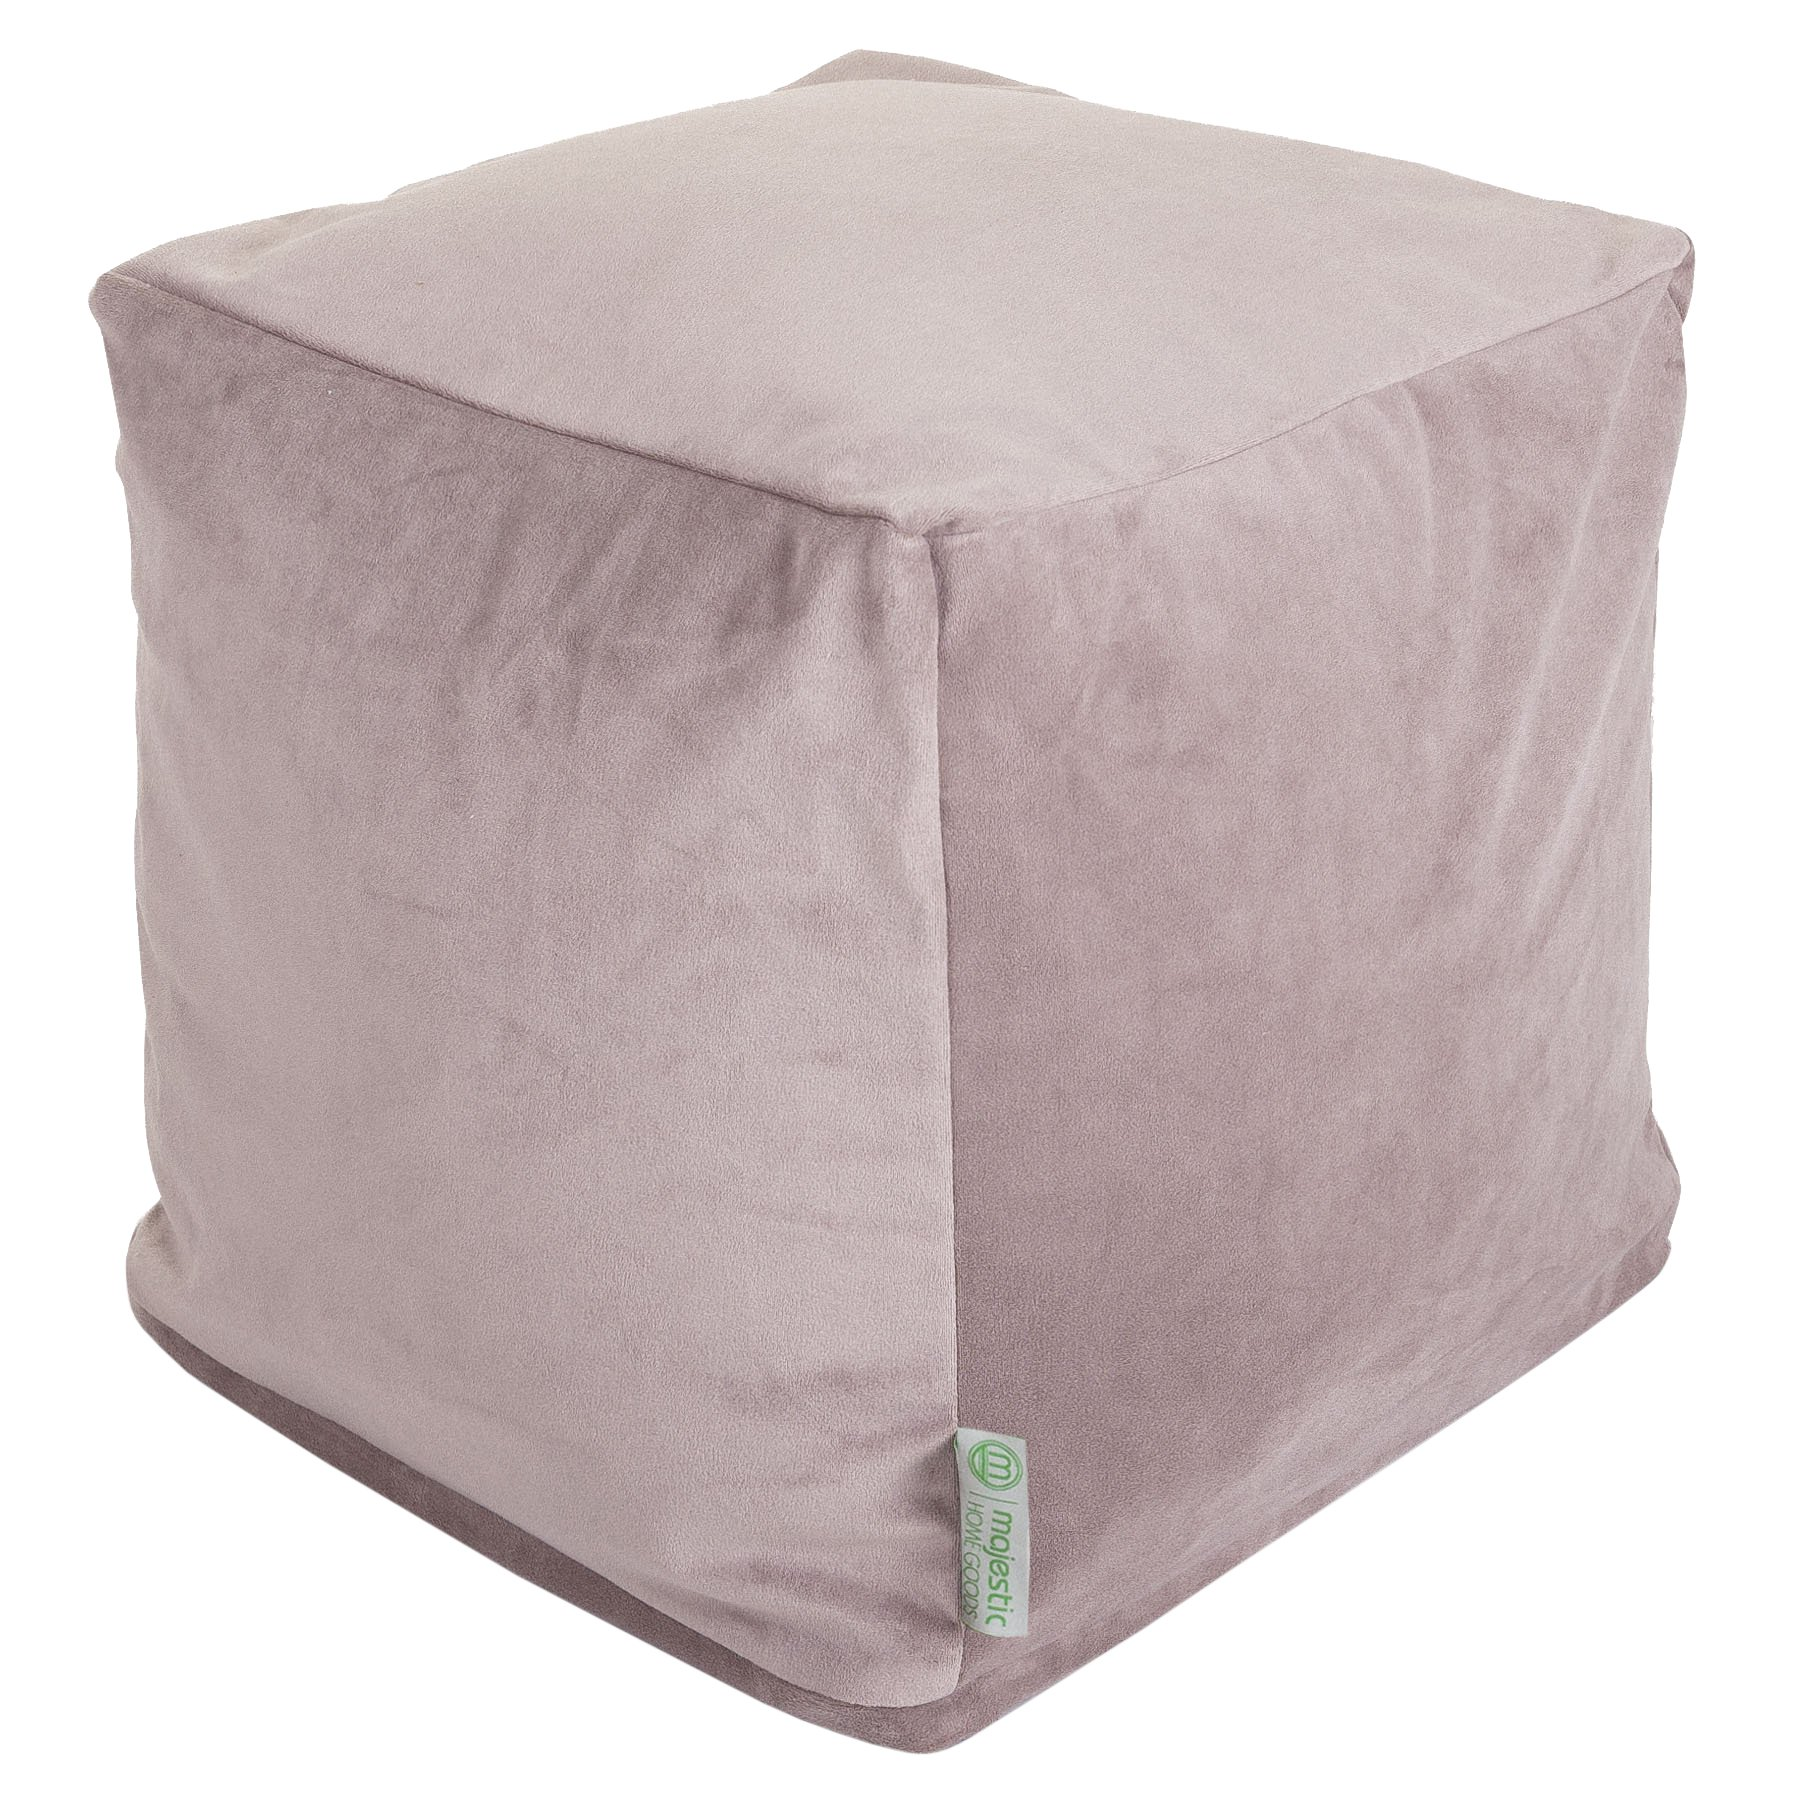 Majestic Home Goods Steel Velvet Indoor/Outdoor Bean Bag Ottoman Pouf Cube 17'' L x 17'' W x 17'' H